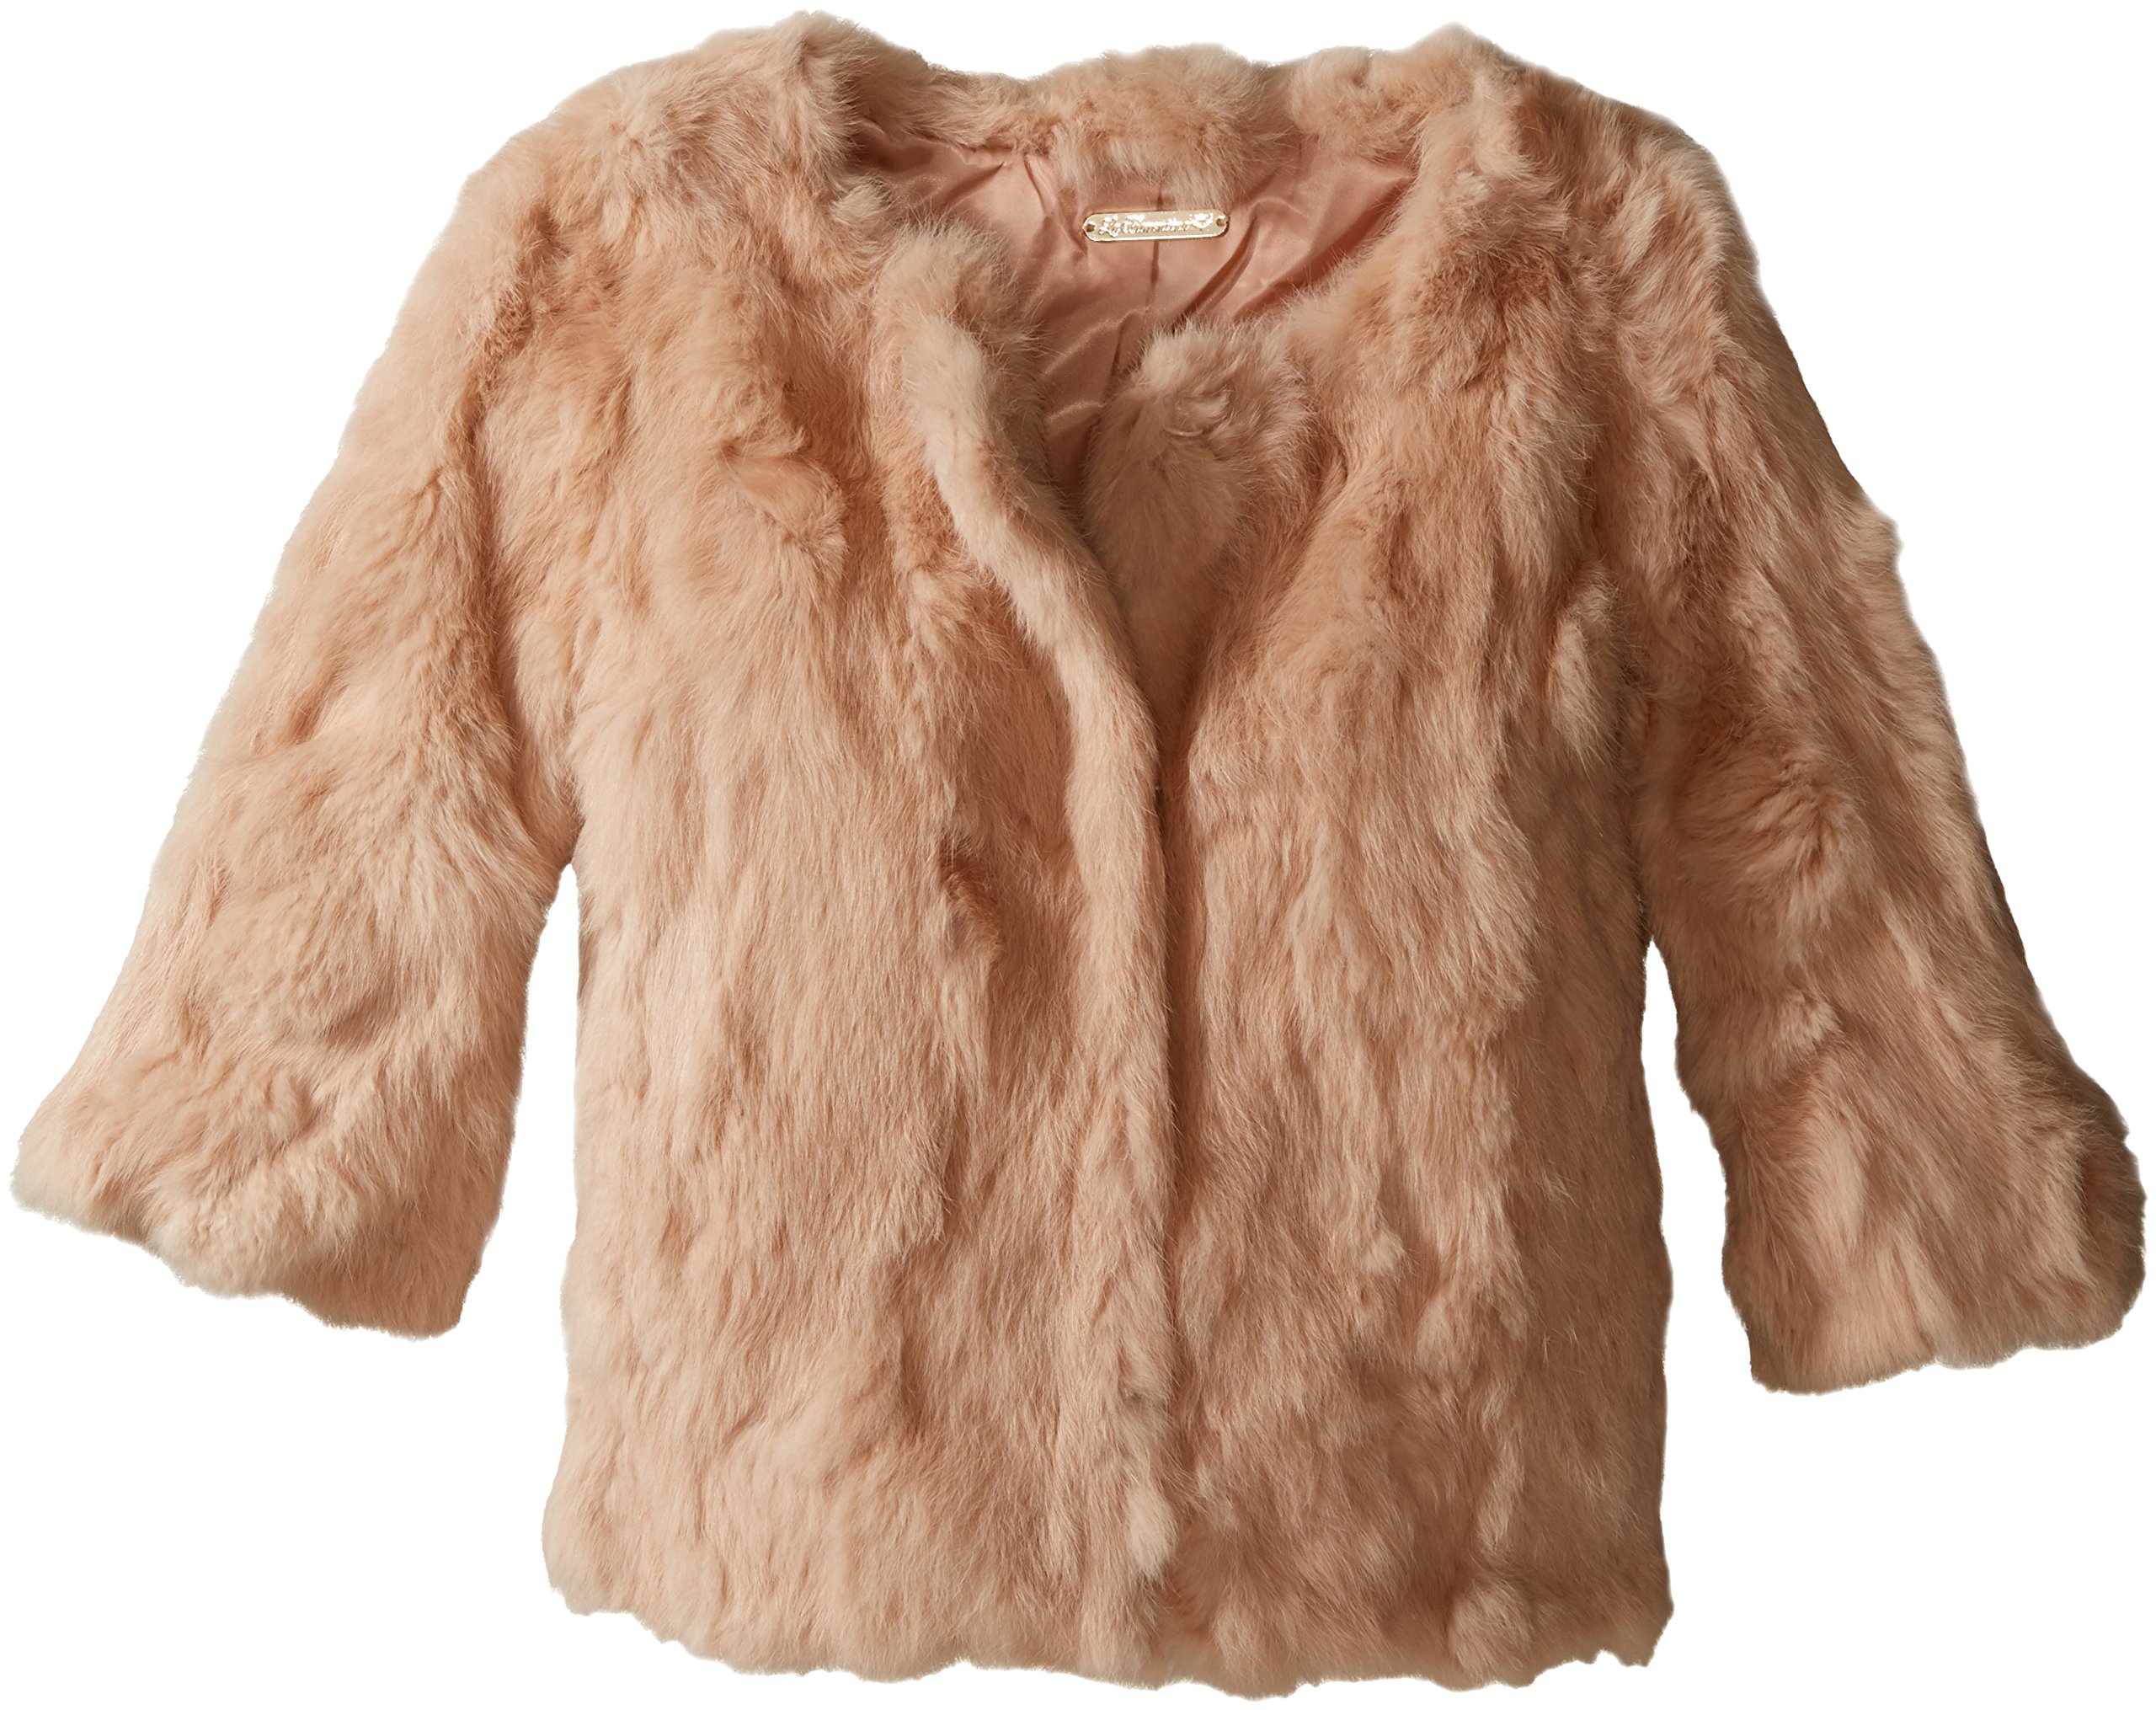 La Fiorentina Women's Cropped Fur Jacket, Camel, Small/Medium